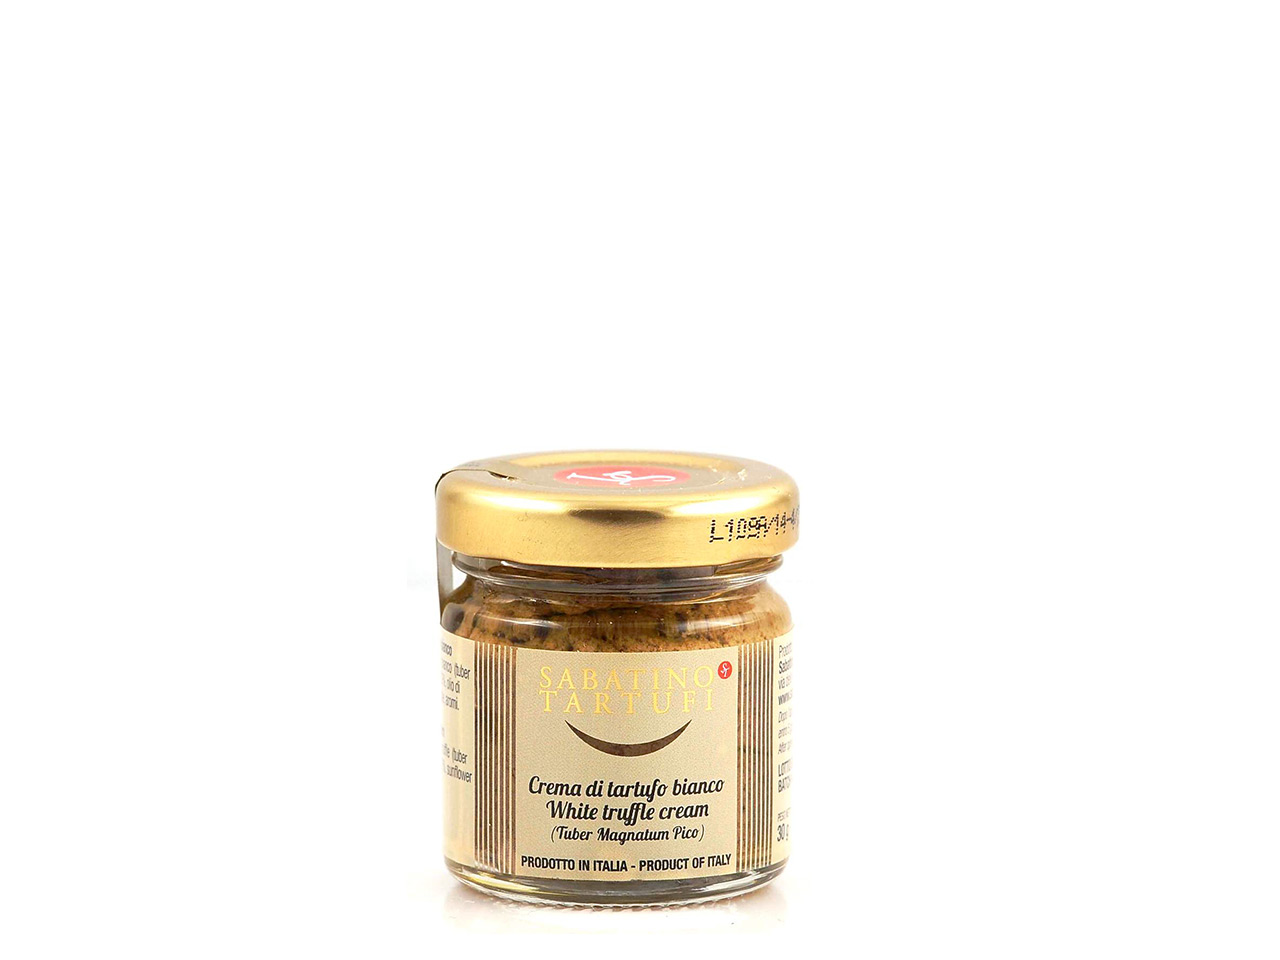 Sabatino White Truffle Cream 30gm